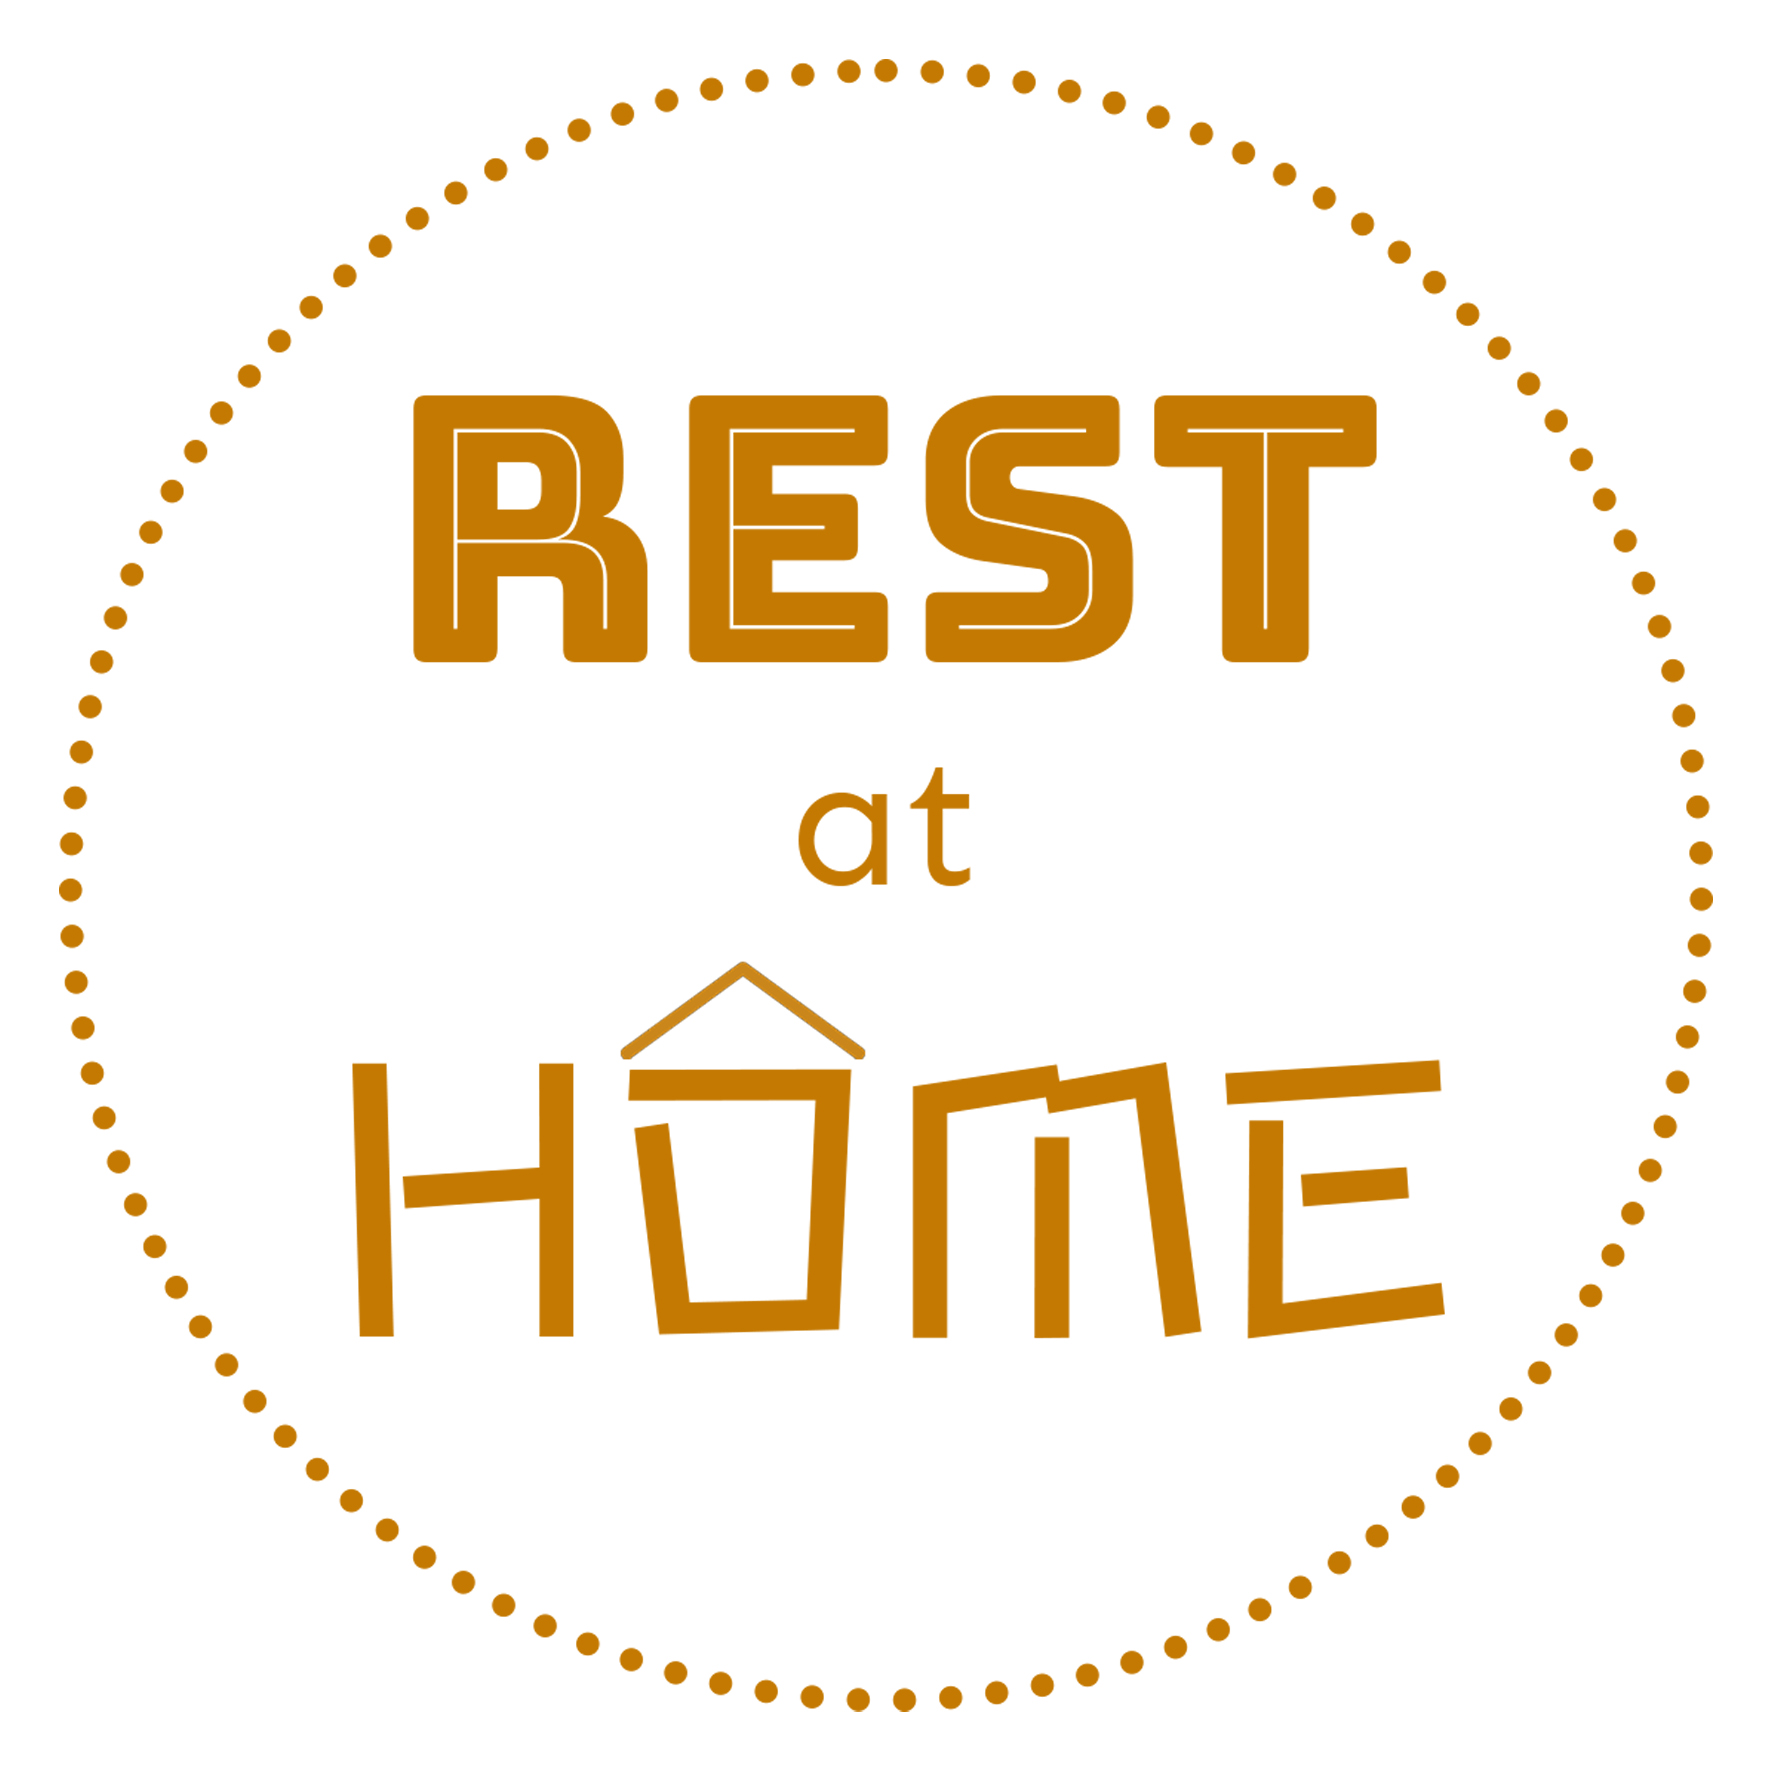 Rest at Home